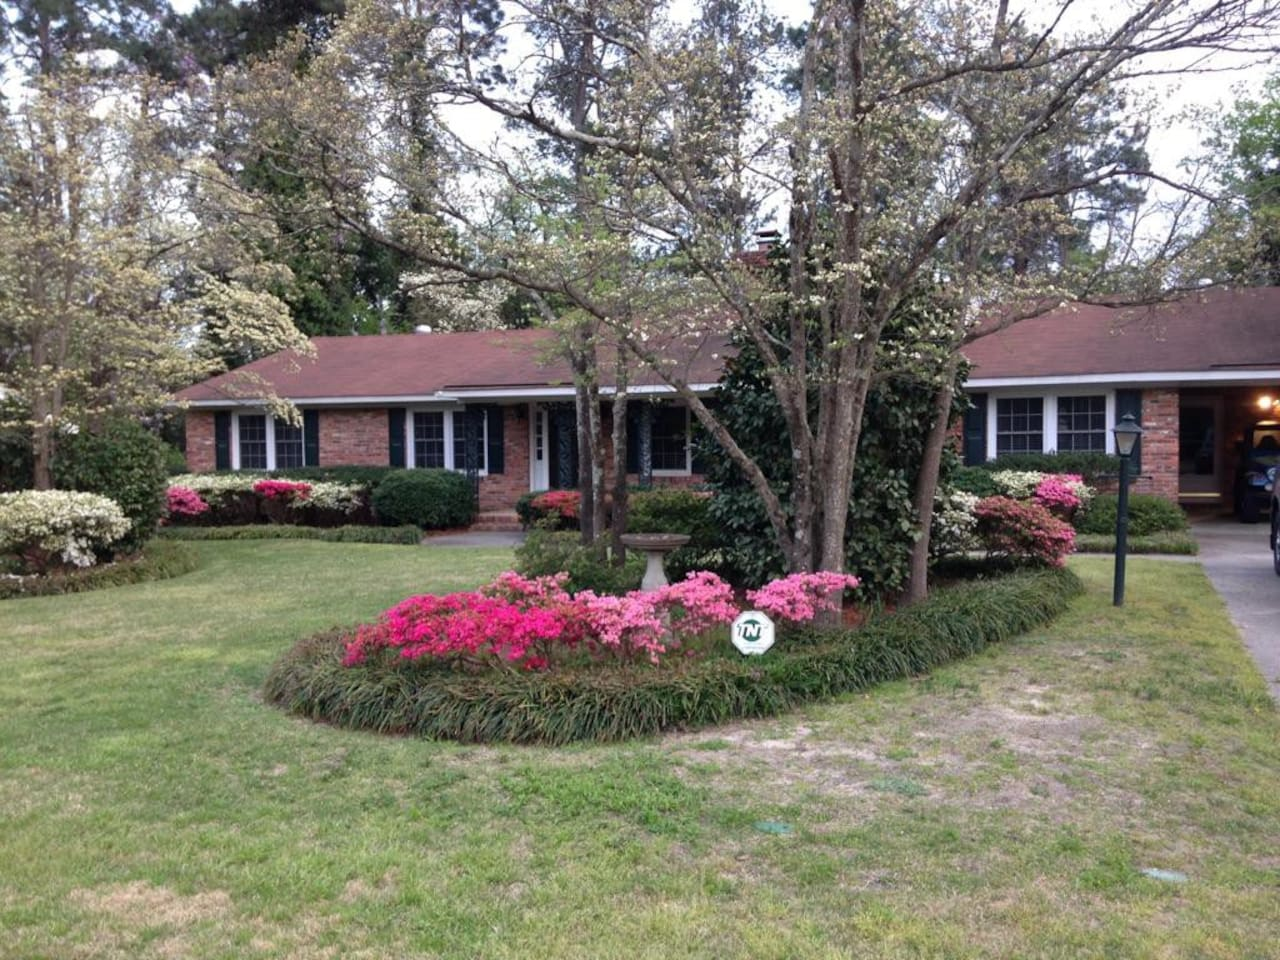 Azalea's in bloom for the Masters